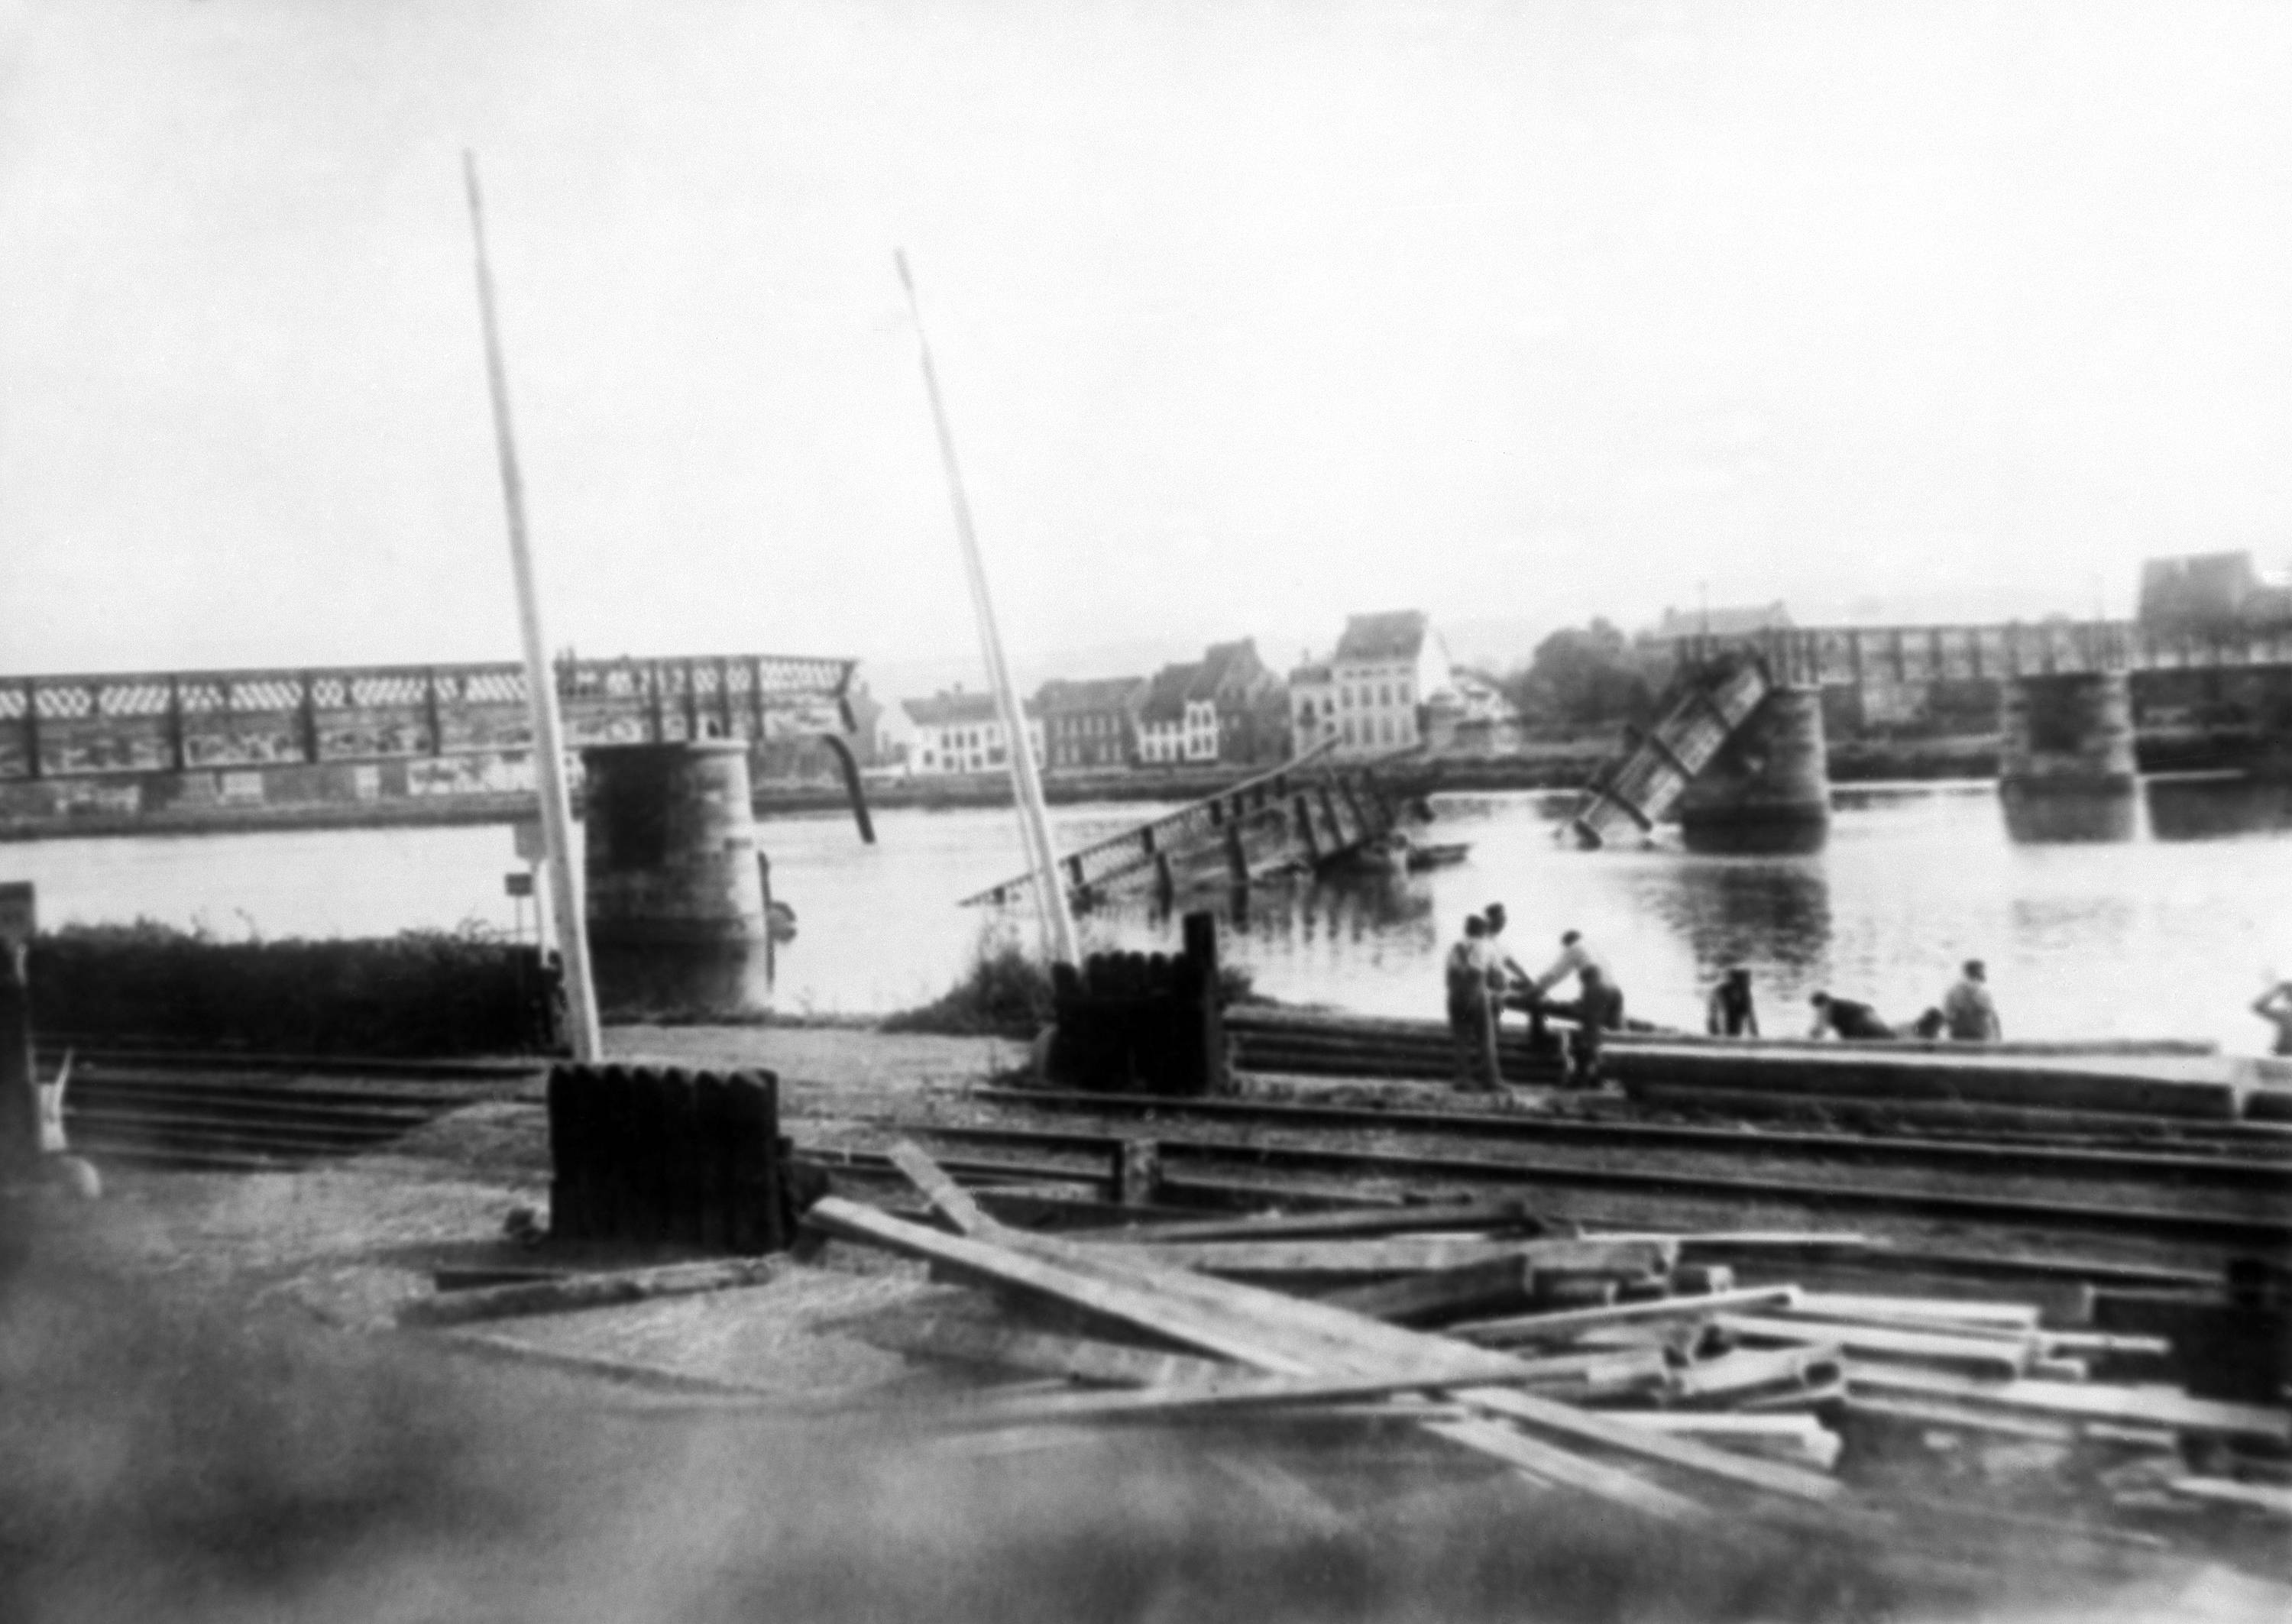 10 OF 100: In this 1914 file photo, a bridge across the Meuse River in Belgium, which was destroyed by retreating Belgian troops, is being rebuilt by invading German troops.